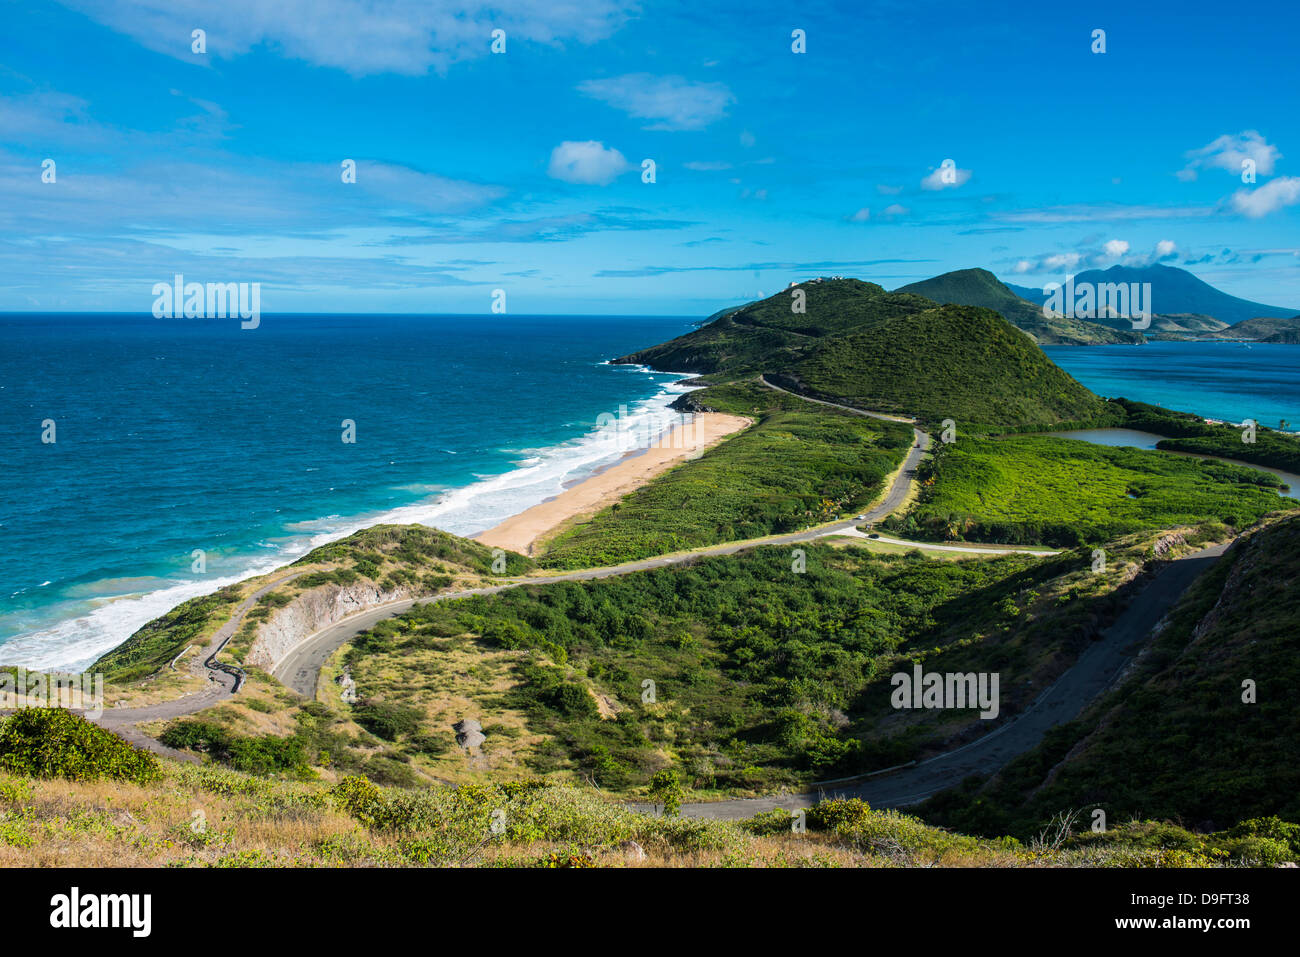 View over Turtle Bay on St. Kitts, St. Kitts and Nevis, Leeward Islands, West Indies, Caribbean - Stock Image